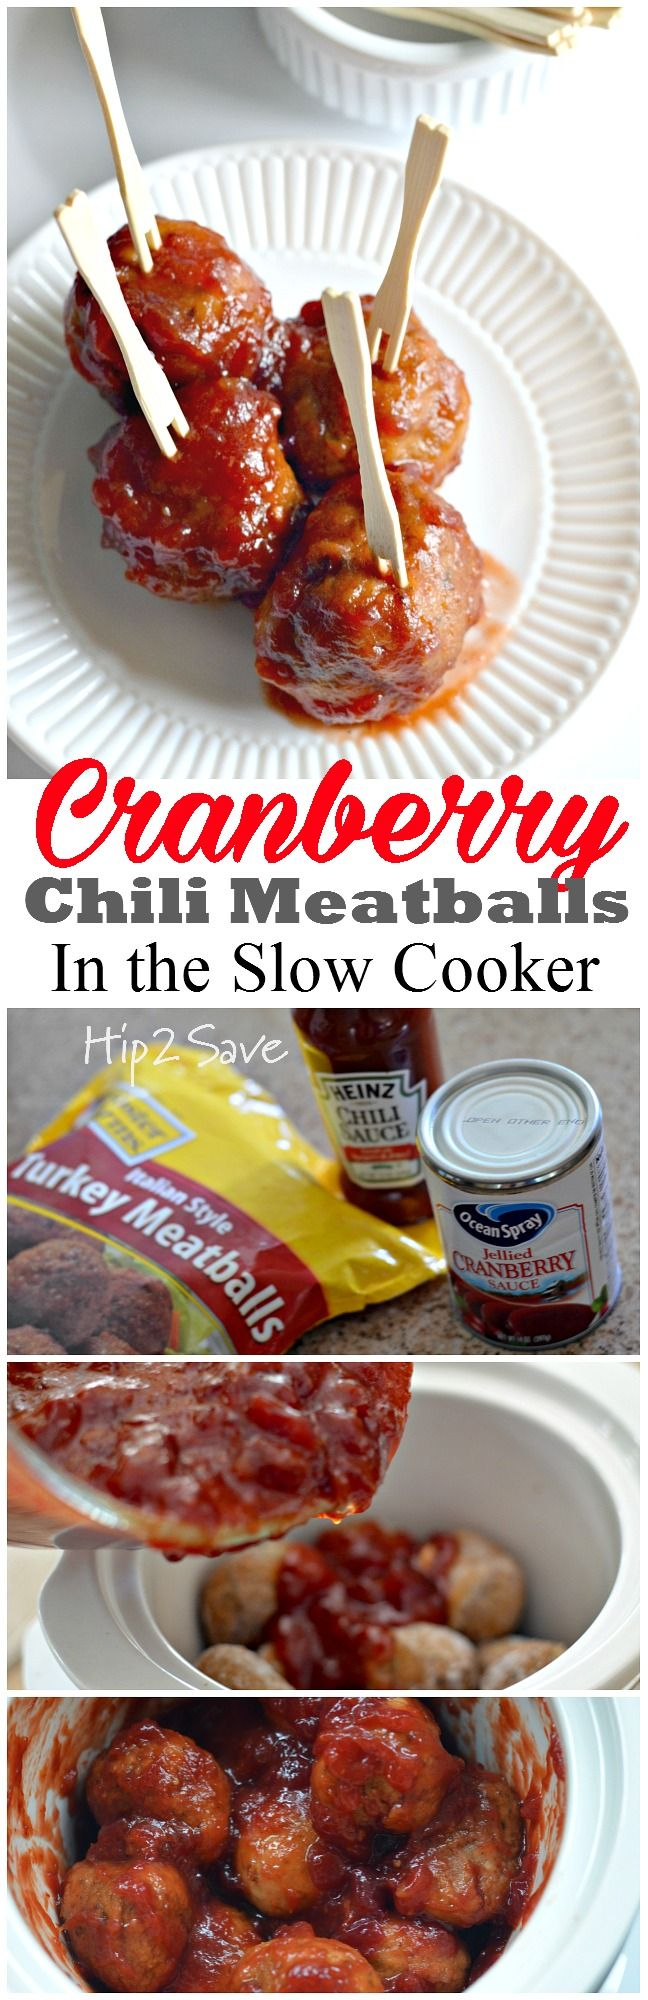 If you're looking for an easy and mouth watering appetizer to make this holiday season, try these yummy Cranberry Chili Meatballs that you make in the slow cooker! They are the perfect combo of sweet, sour, & smoky and are sure to be a big hit at your next gathering. Discover this wonderful recipe at Hip2Save.com.